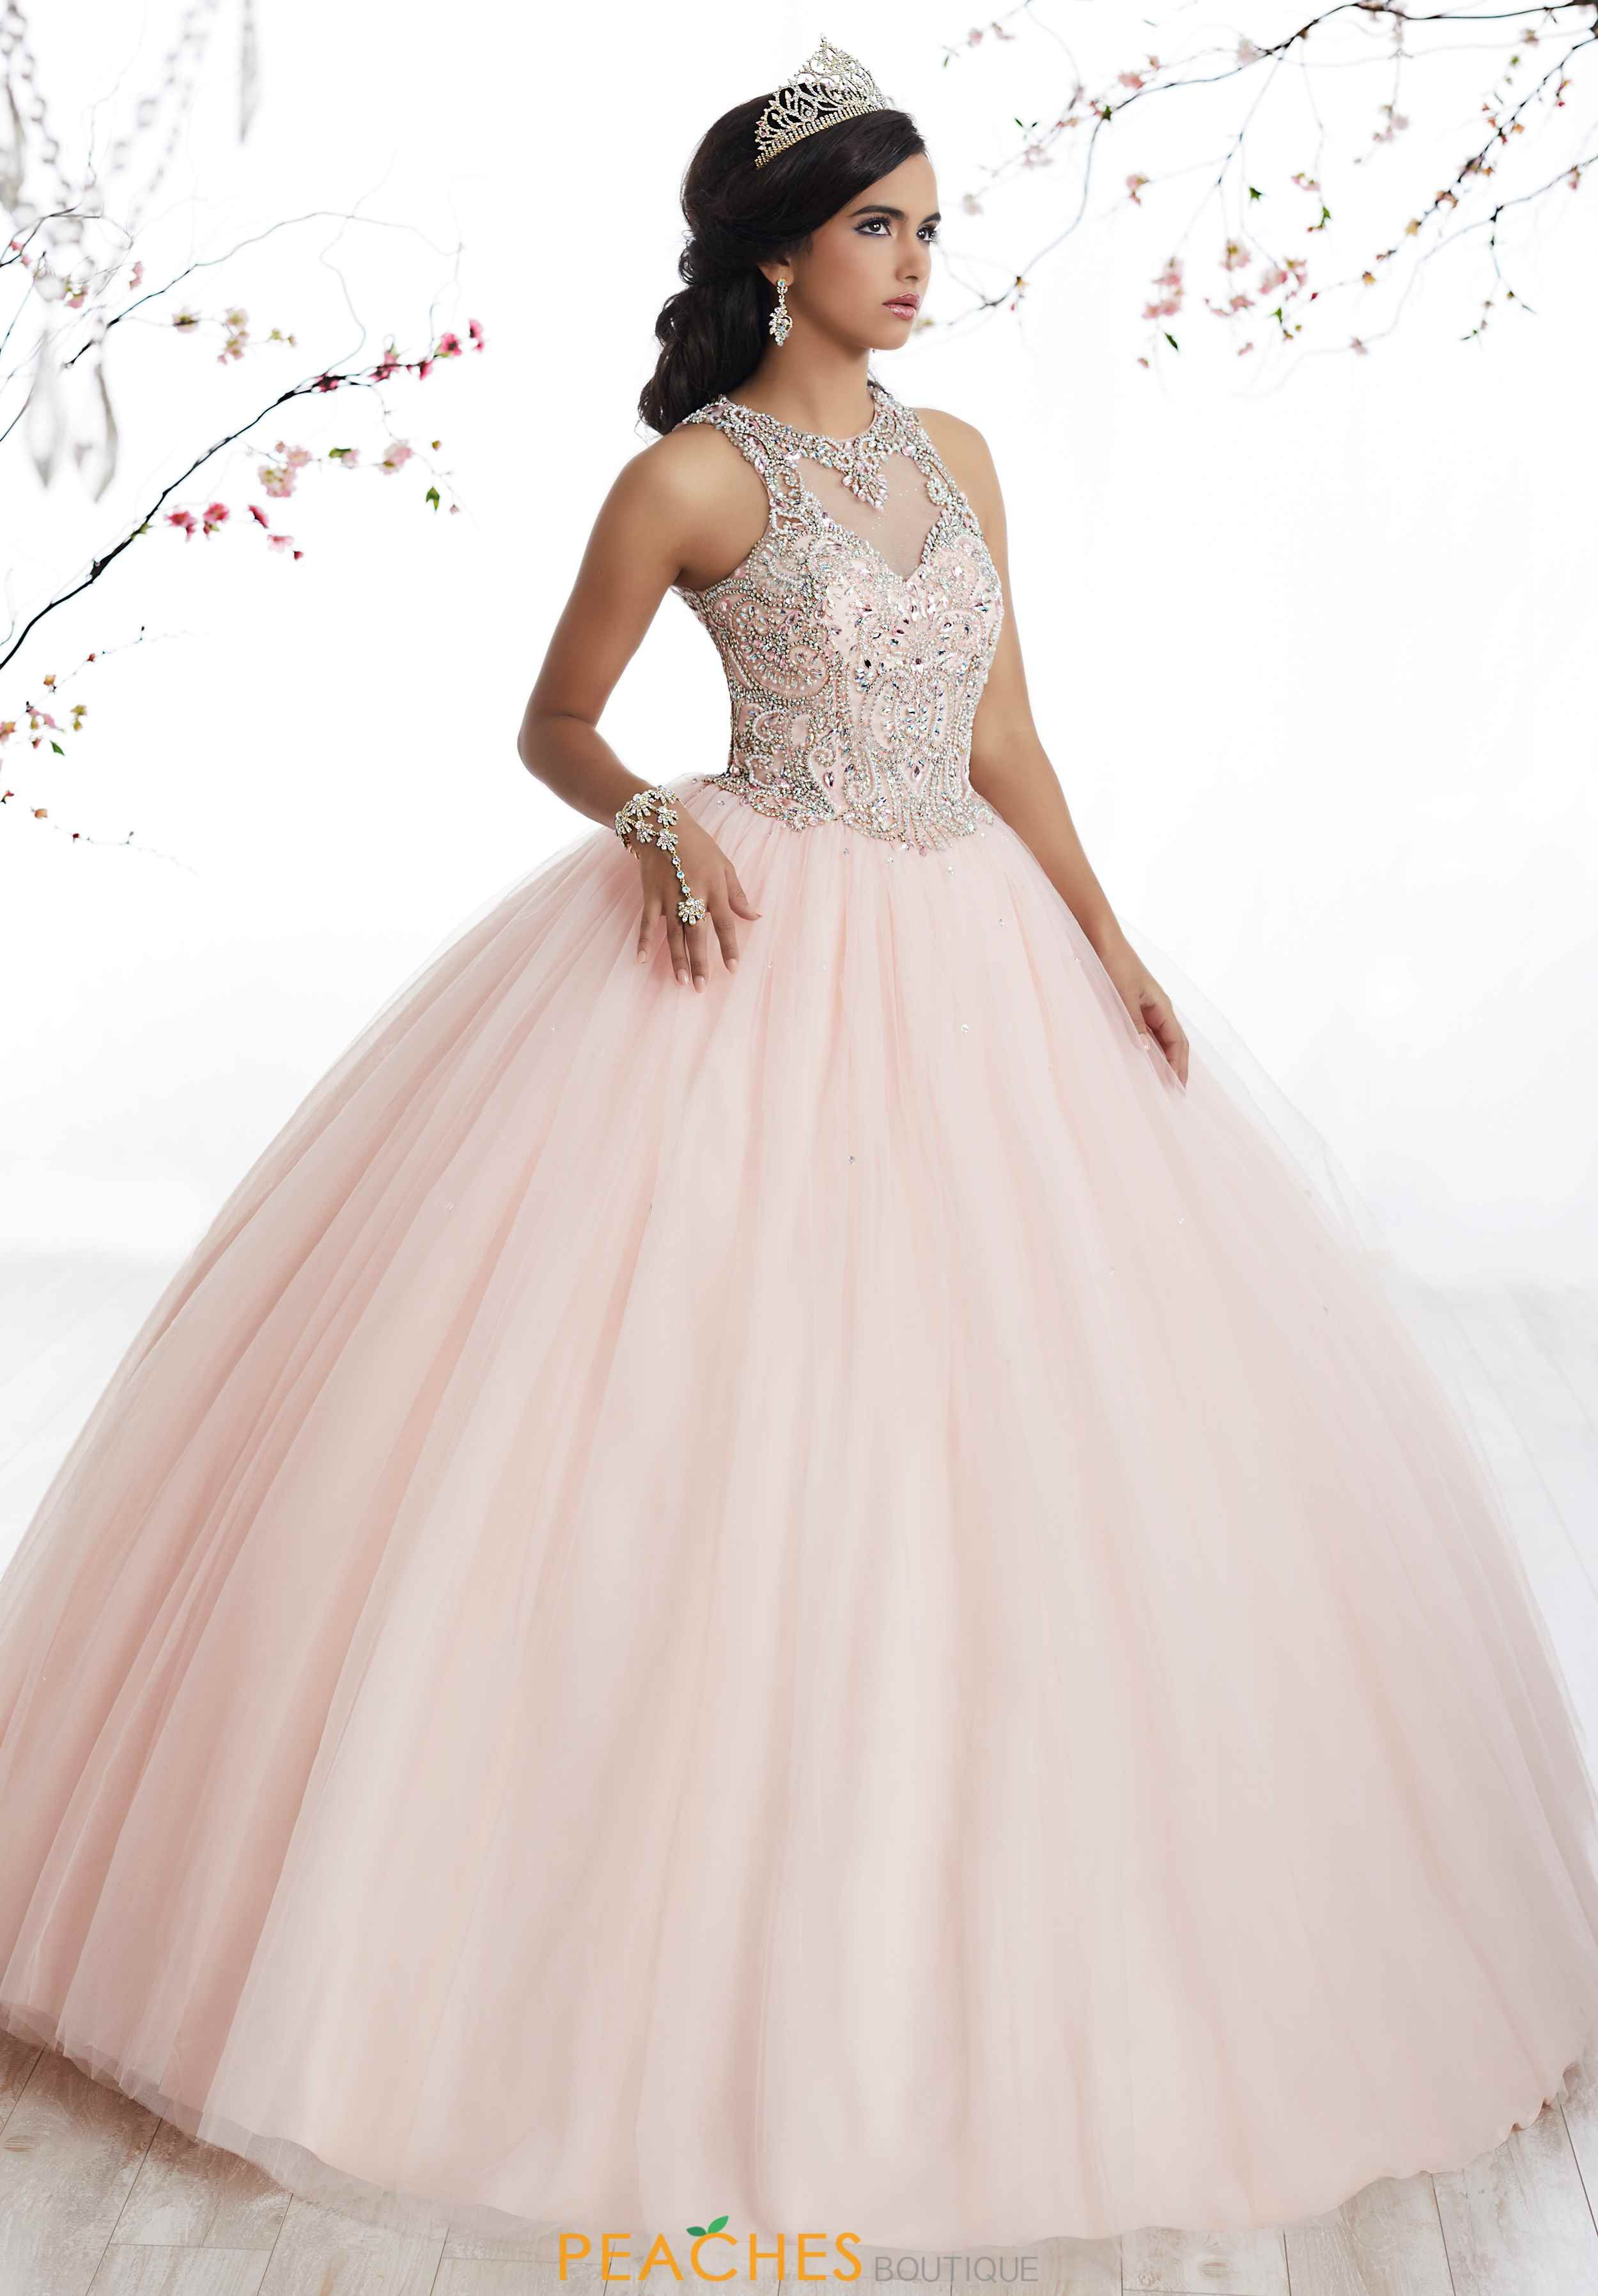 768addc1276 Tiffany Quince Beaded Ball Gown 56327